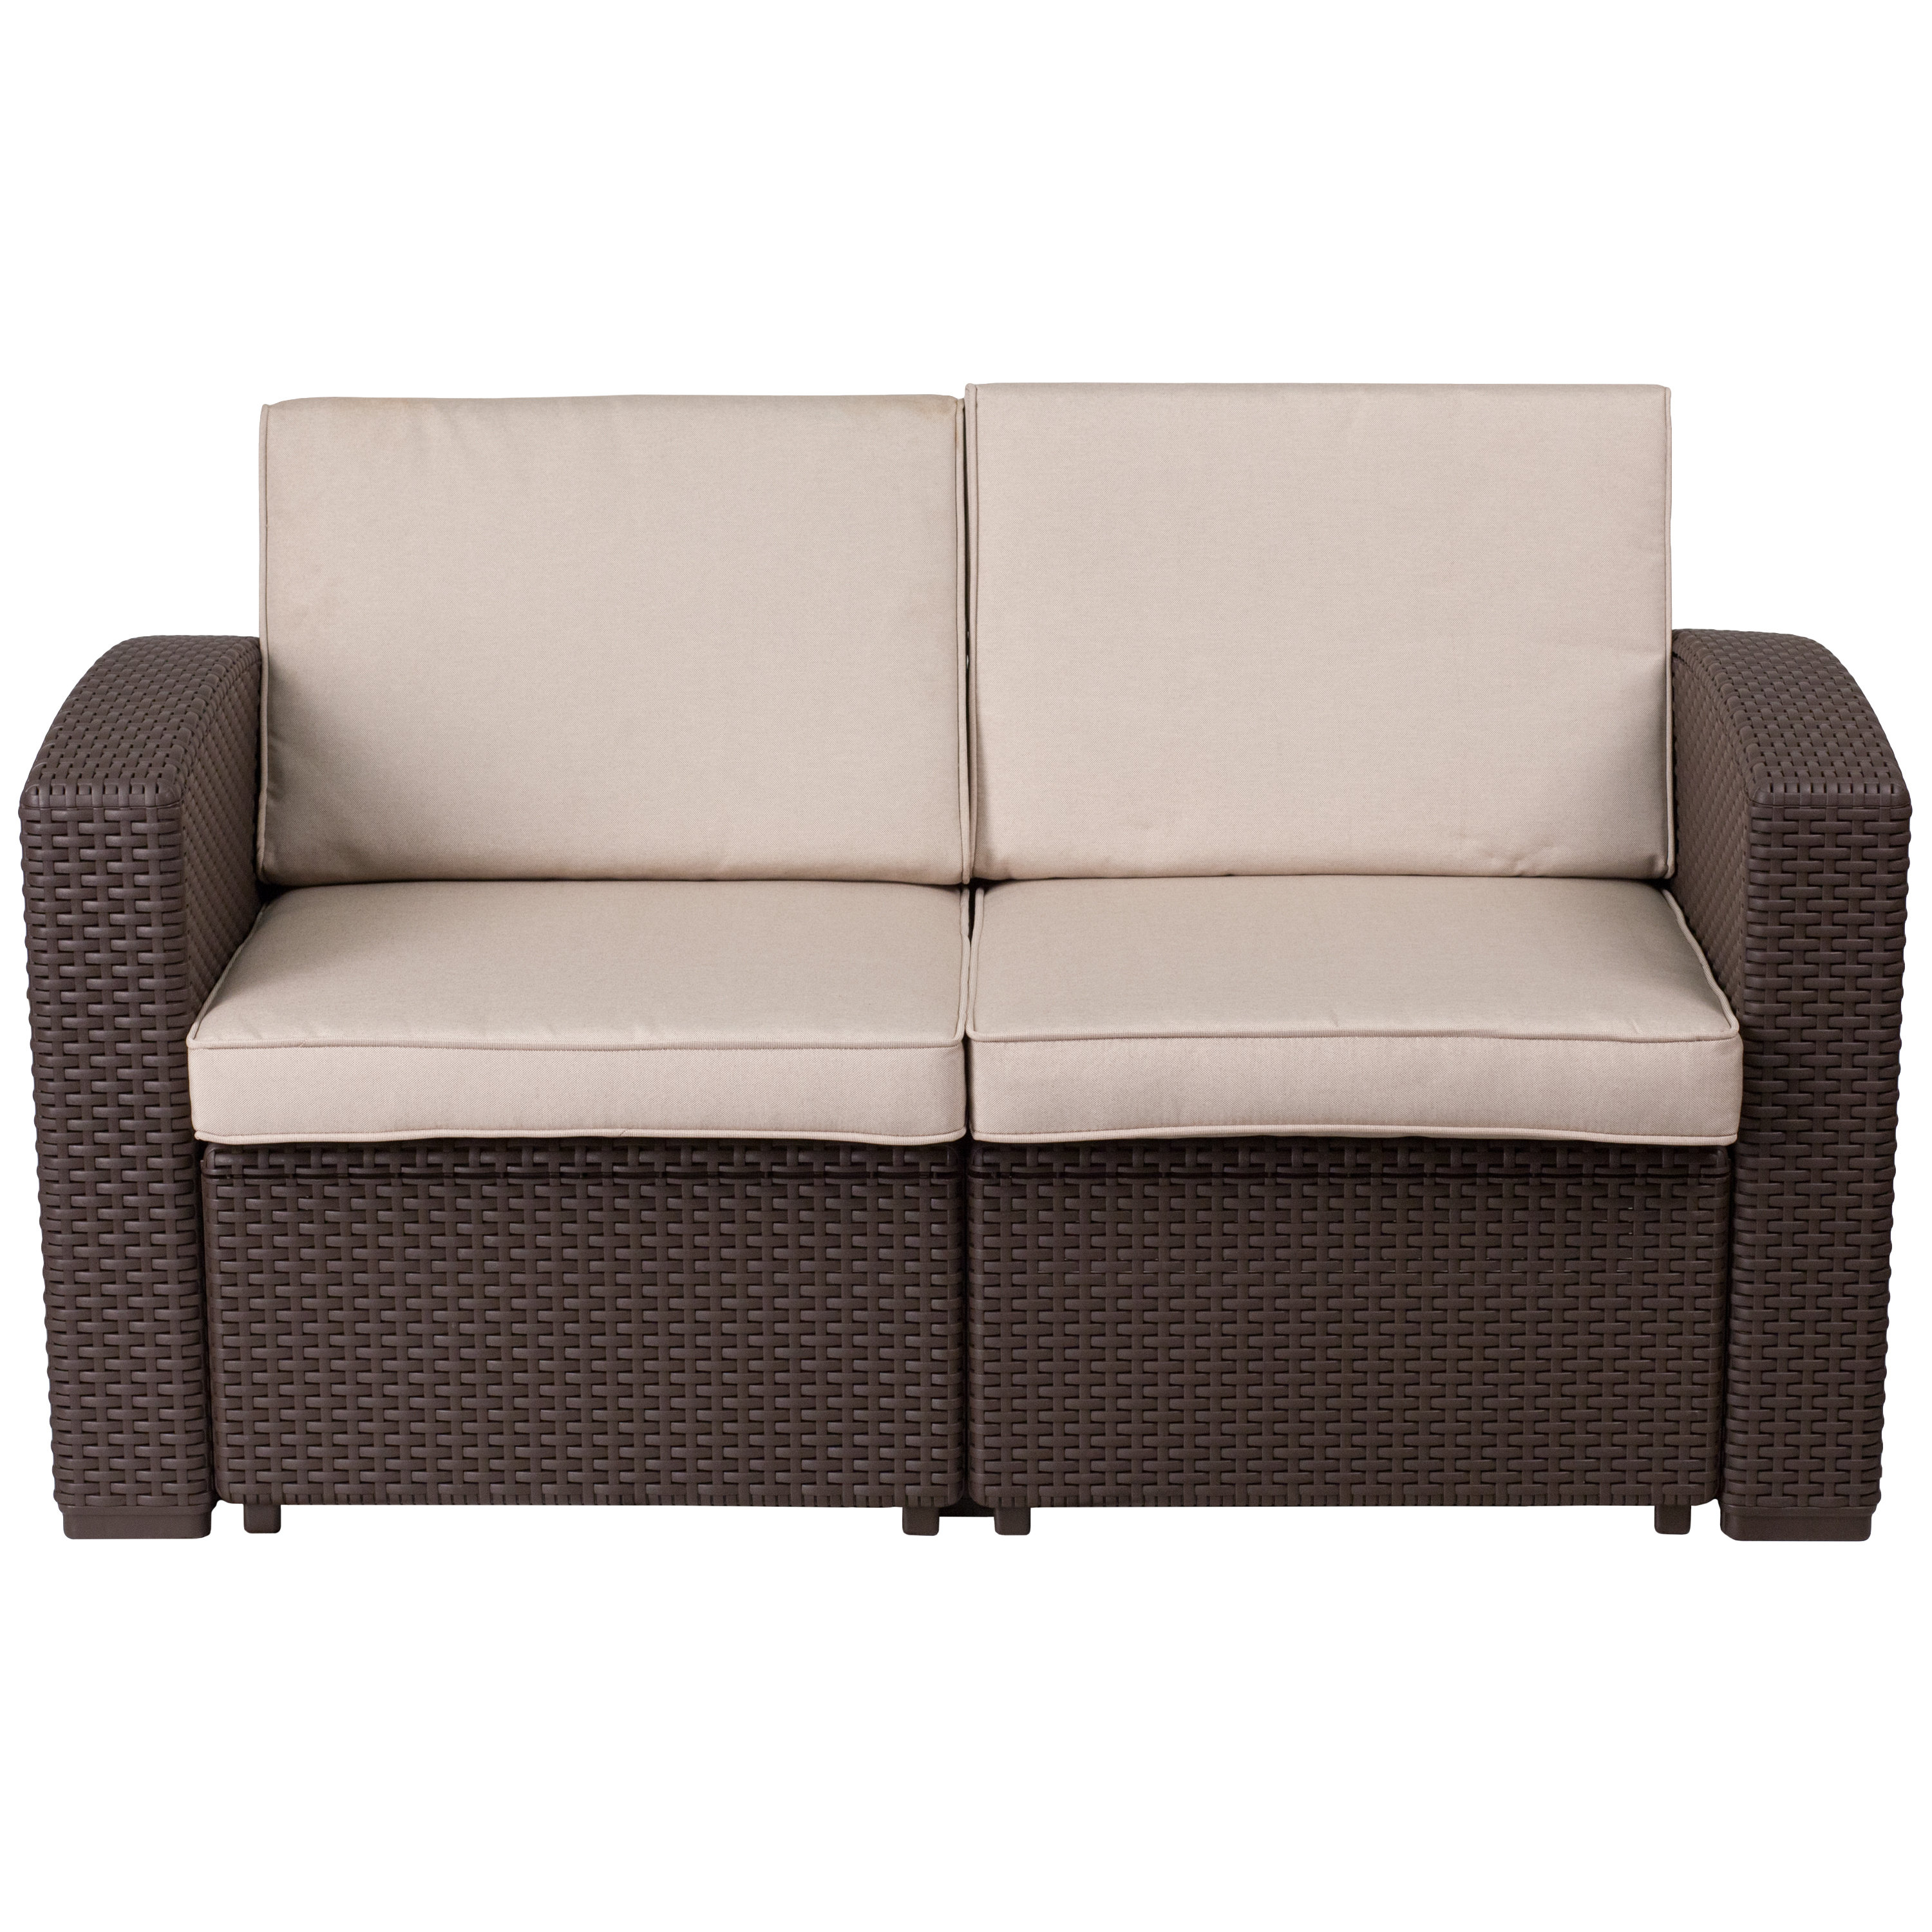 Clifford Loveseat With Cushion With Regard To 2019 Mendelson Loveseats With Cushion (View 2 of 20)